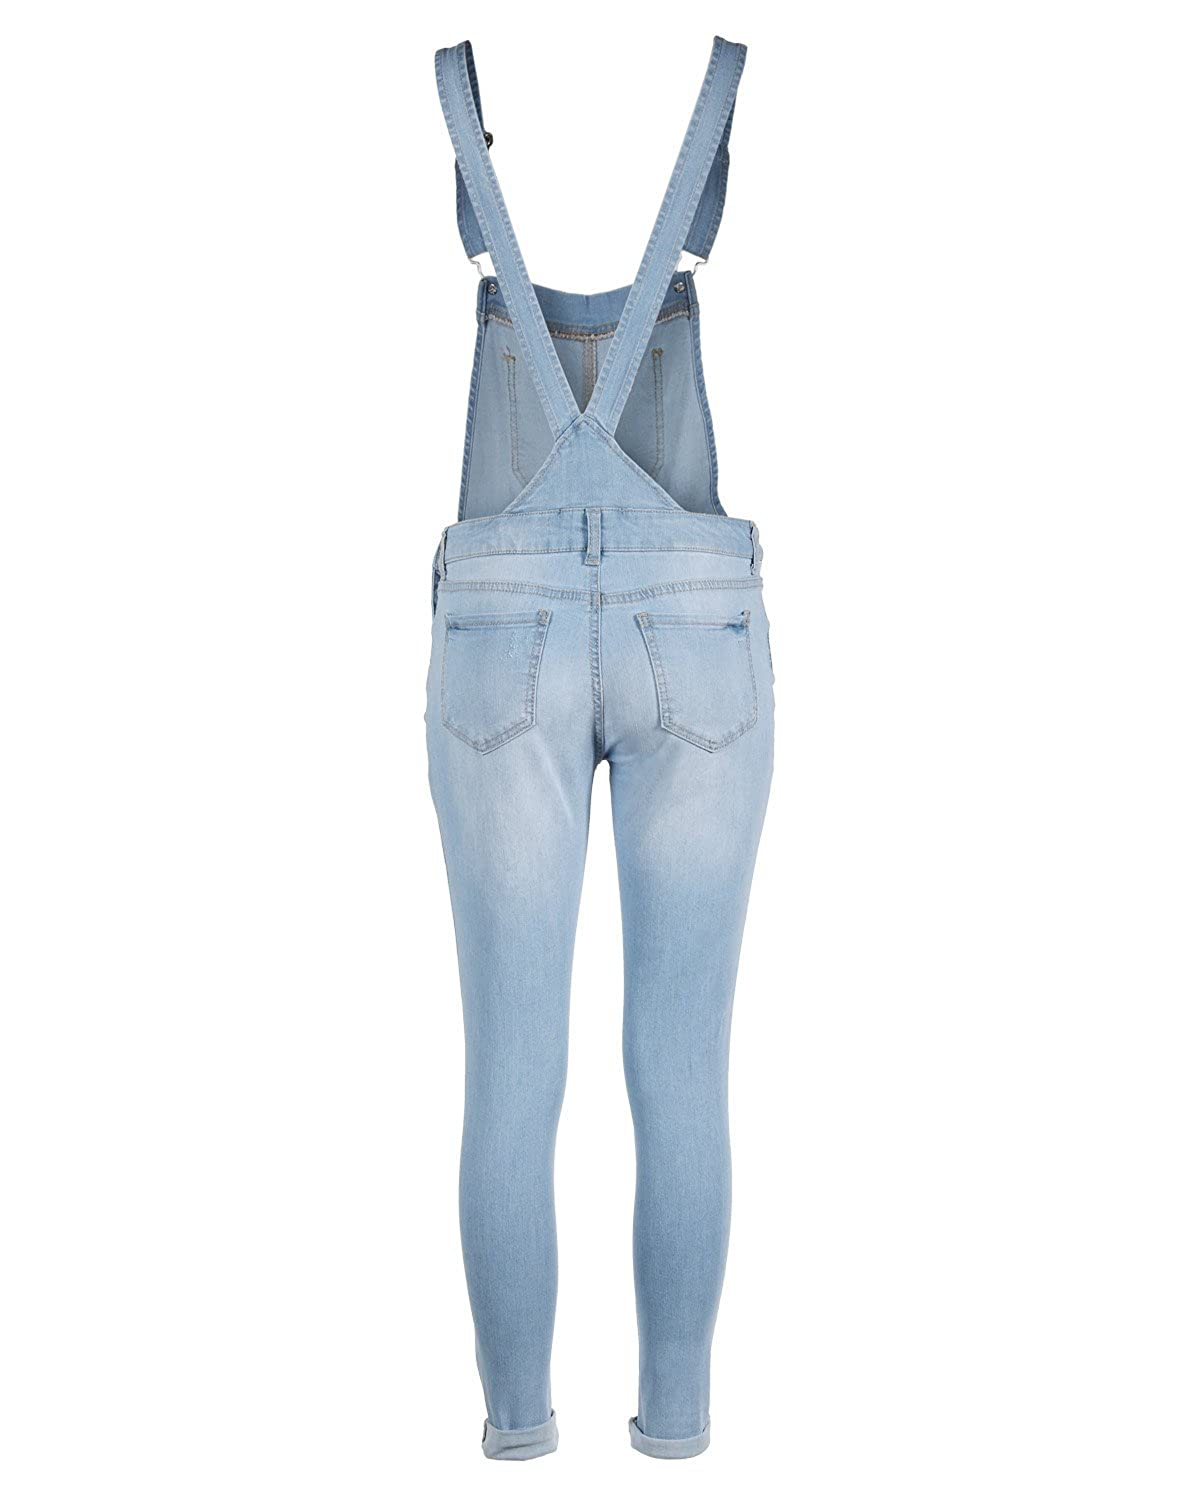 62be1779d7f Dream Supply Women s Juniors Distressed Skirtall Adjustable Strap Overalls  at Amazon Women s Clothing store